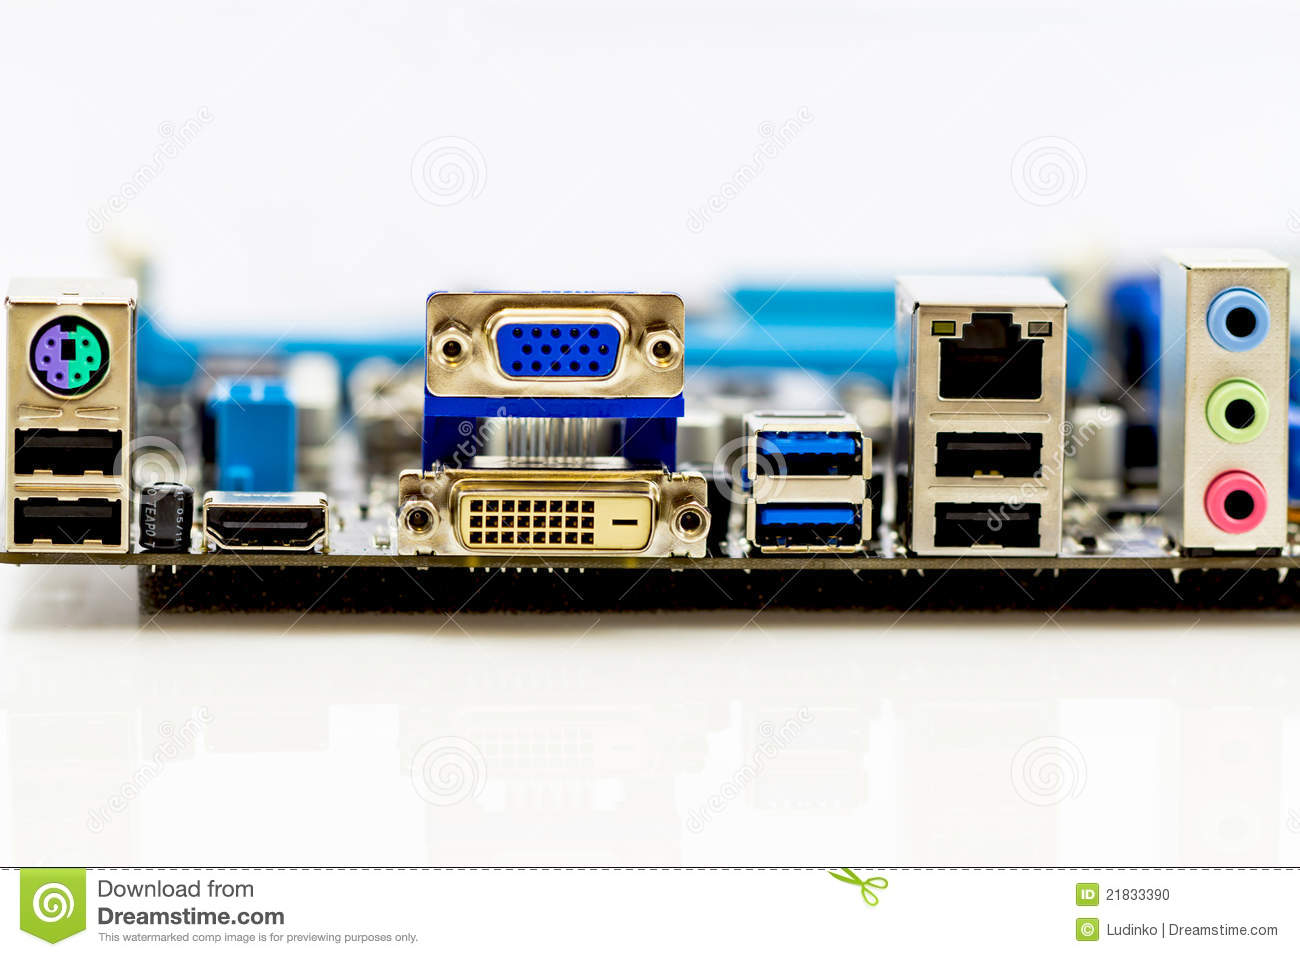 Back Panel Connectors Of The Computer Motherboard Stock Photo - Image ...